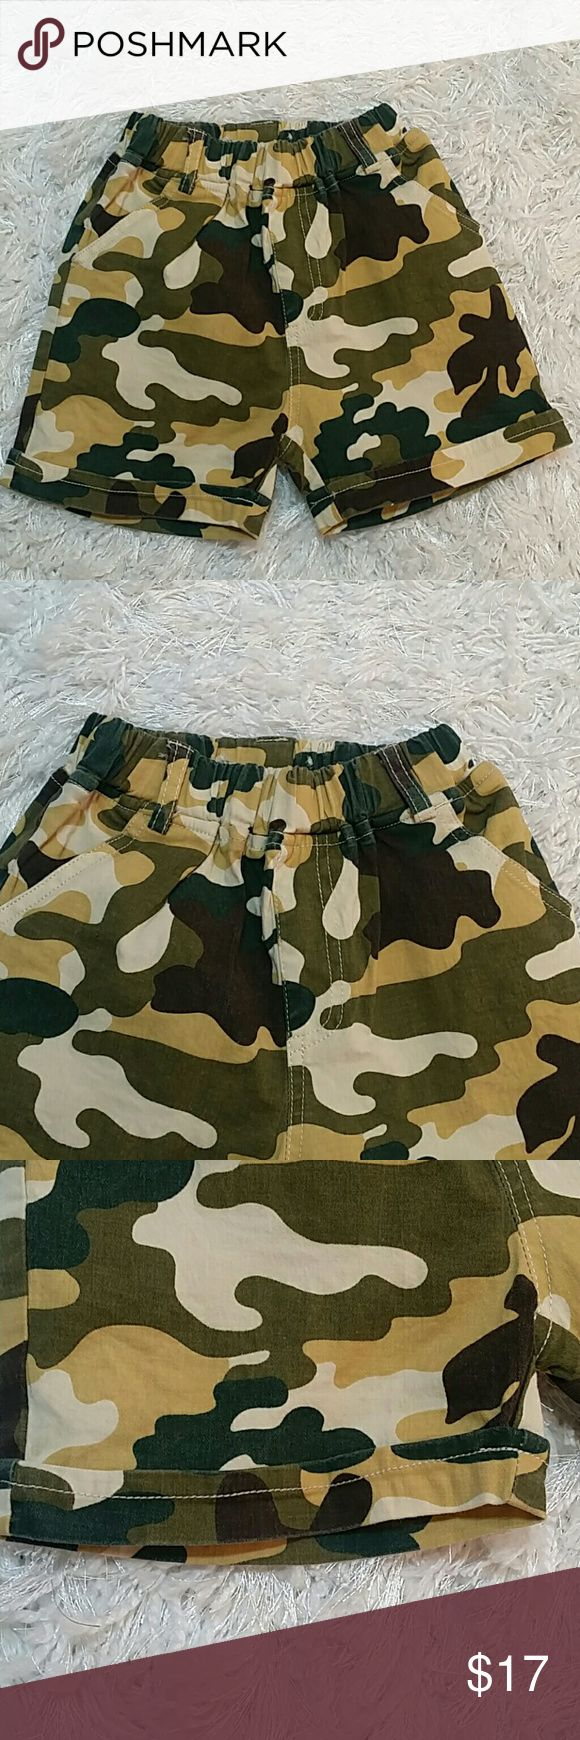 Camouflage Shorts. 3T. Adorable summer shorts in camouflage design.  Have pockets in front and back. Refer to images.  Pull up style  This item is brand new and never used. No tags. Bottoms Shorts